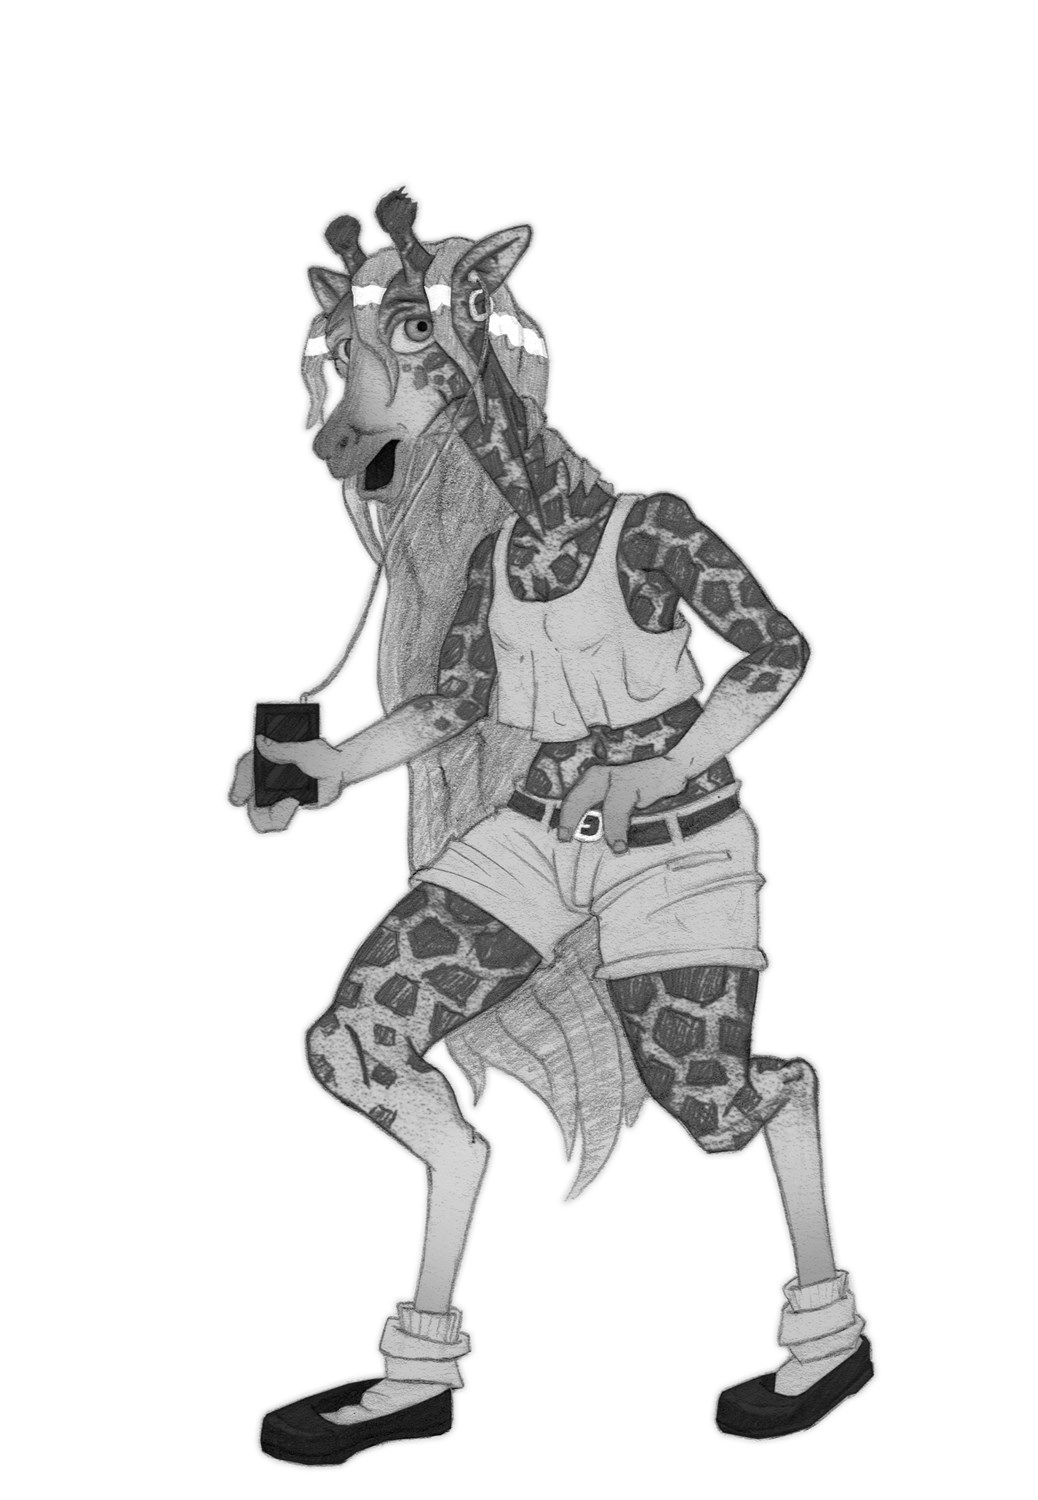 Patreon Sneak Peak - Giraffe by tfancred